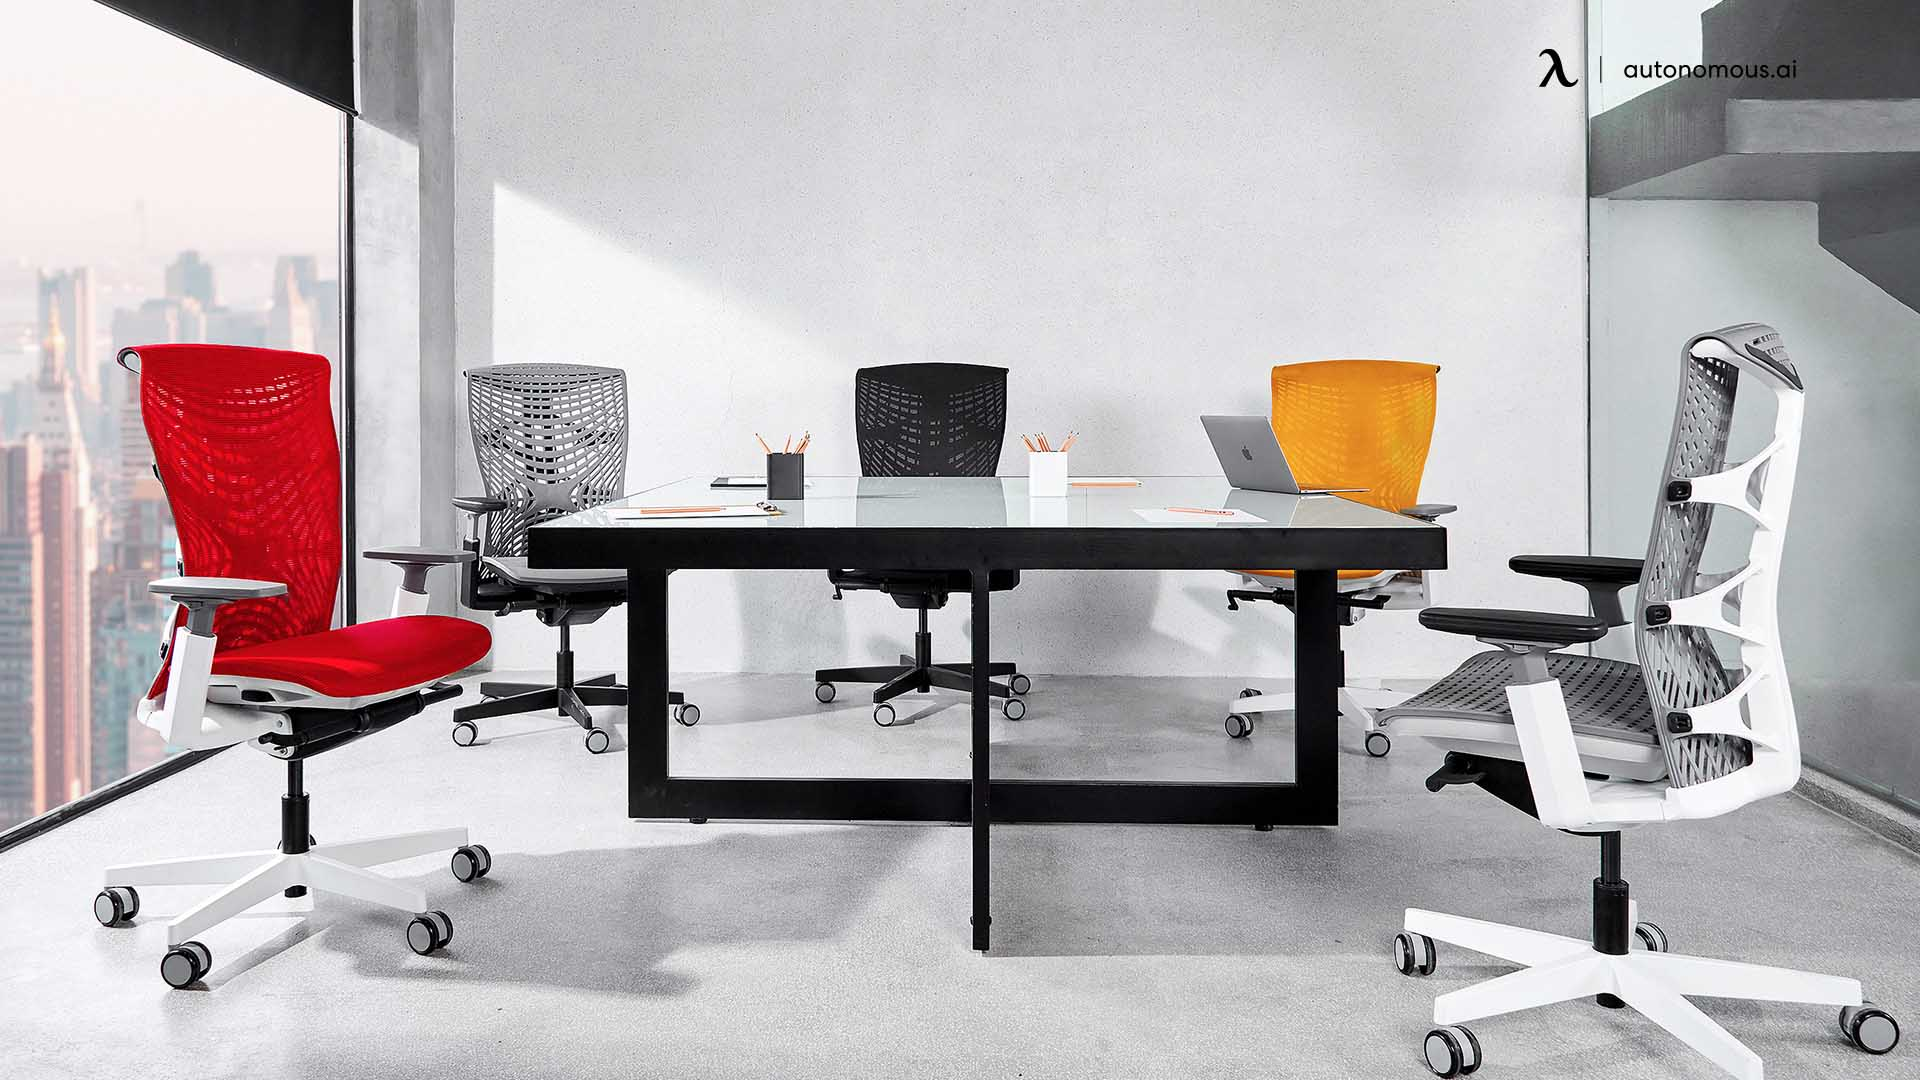 Have Comfort With the Ergonomic Chairs